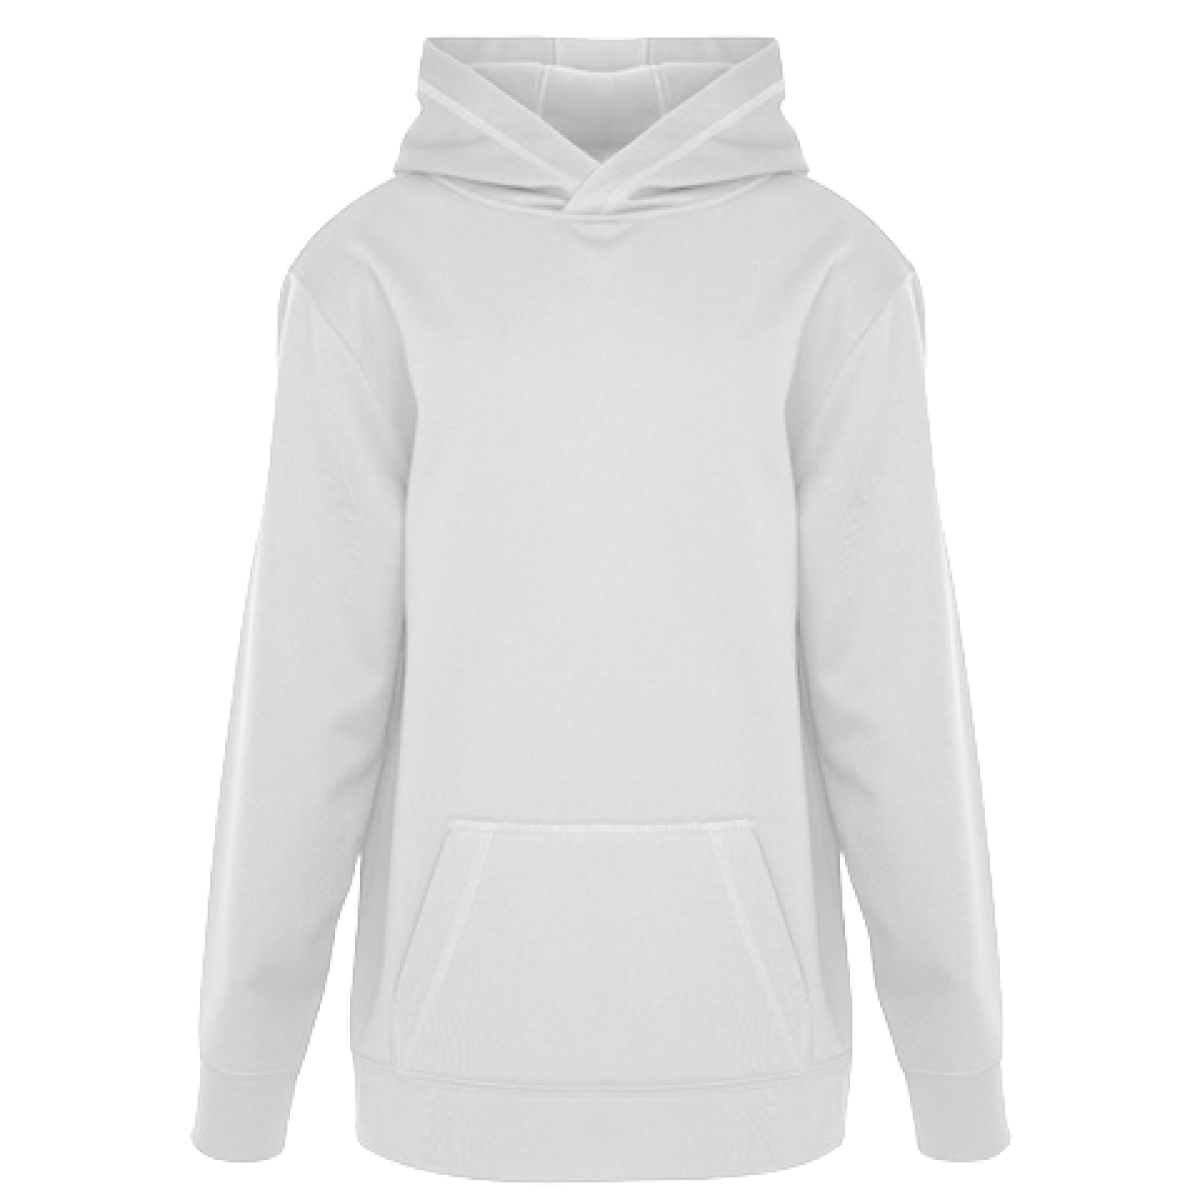 Game Day Fleece Hooded Ladies Sweatshirt-White-M